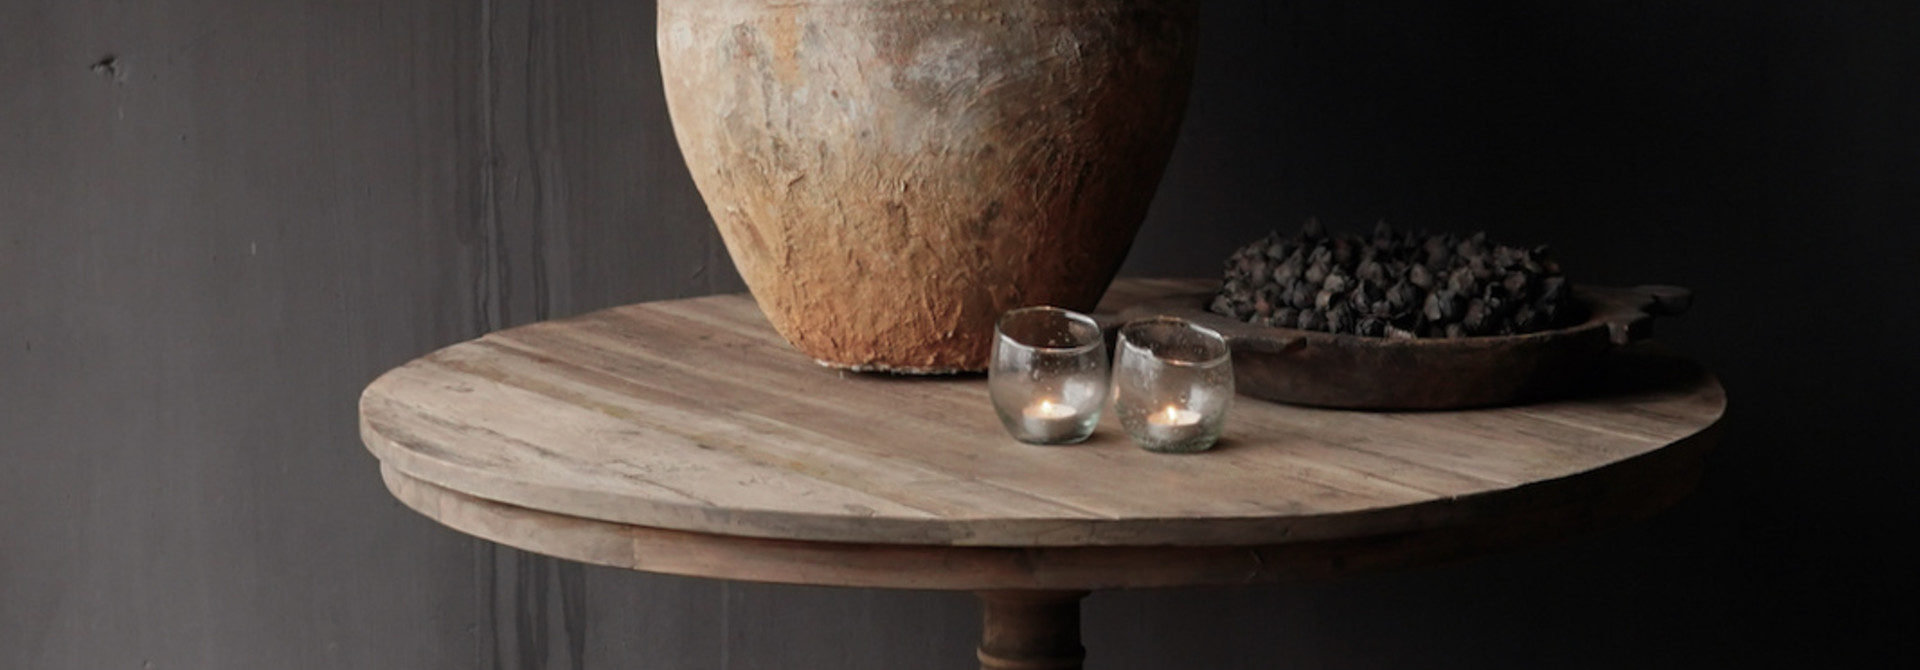 Cool round table made of old used wood - Copy